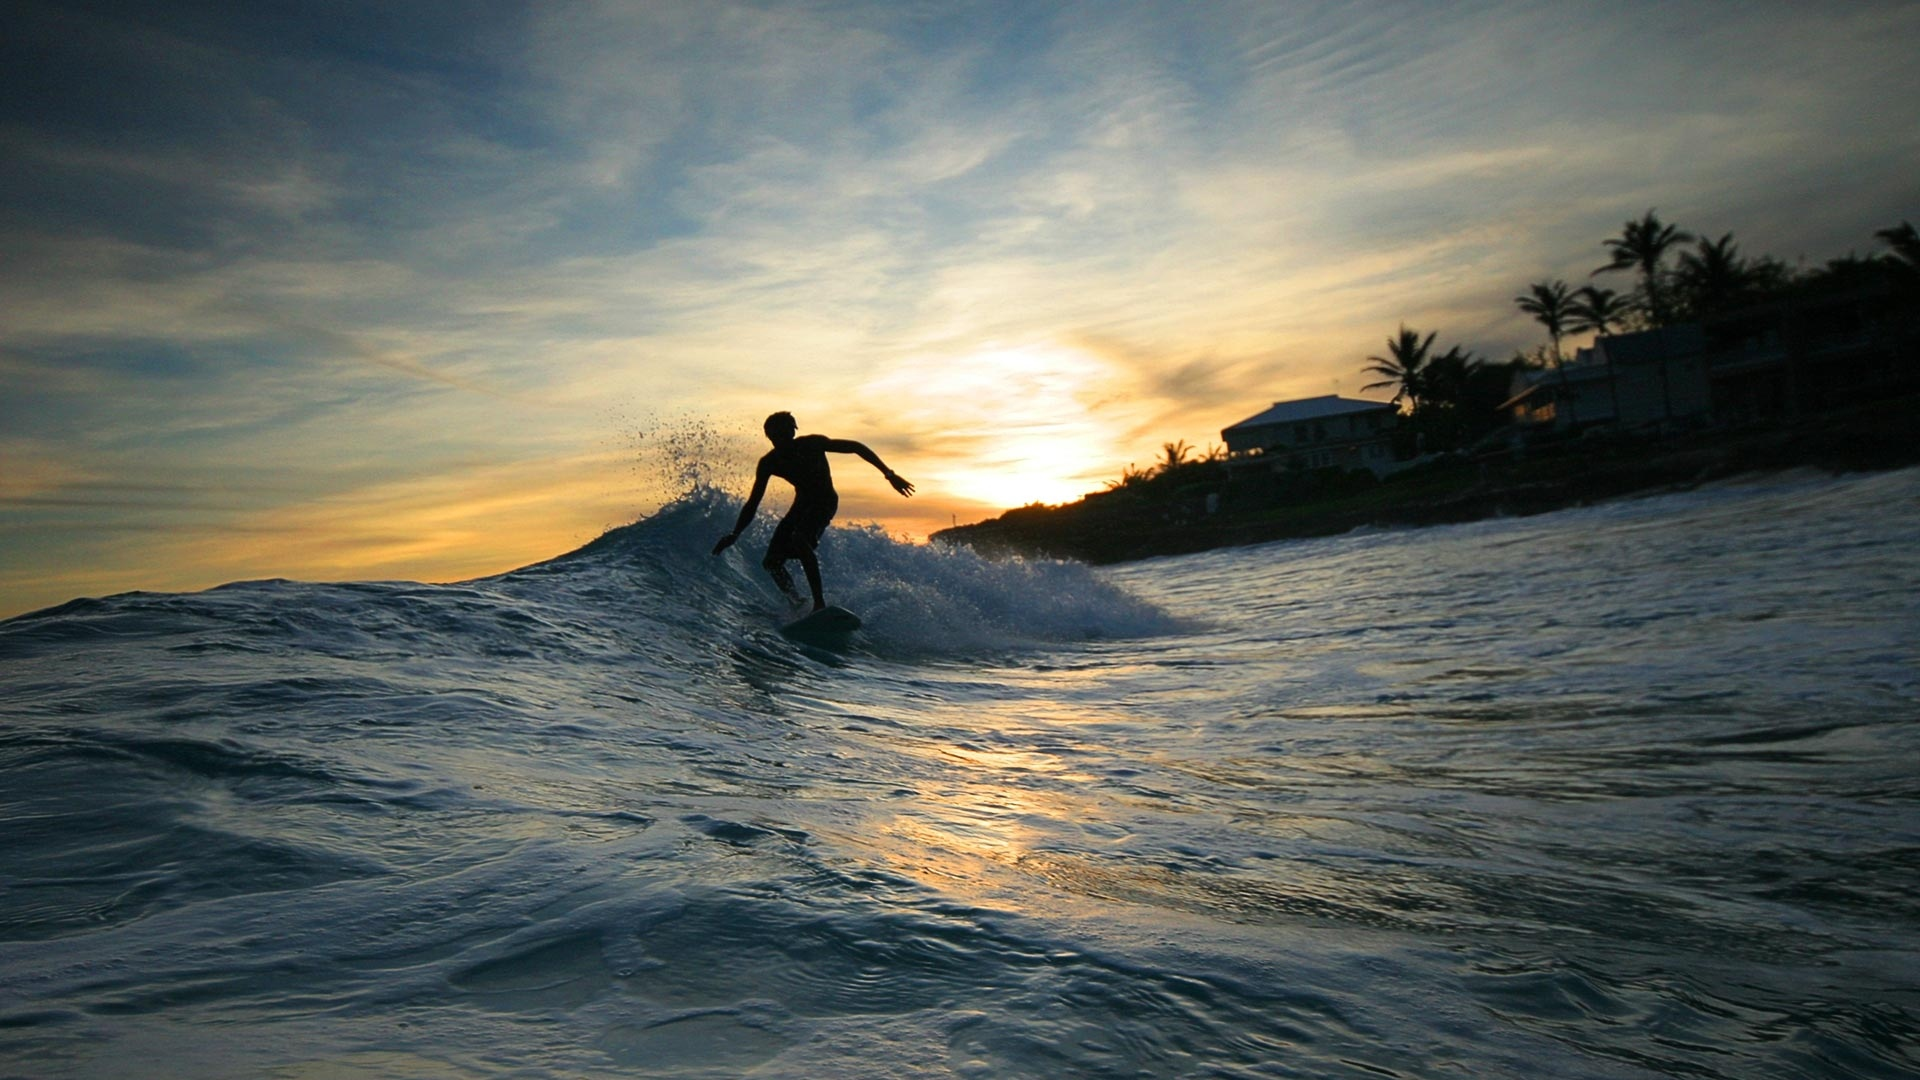 Download Wallpaper 1920x1080 Surfing Waves Evening Guy